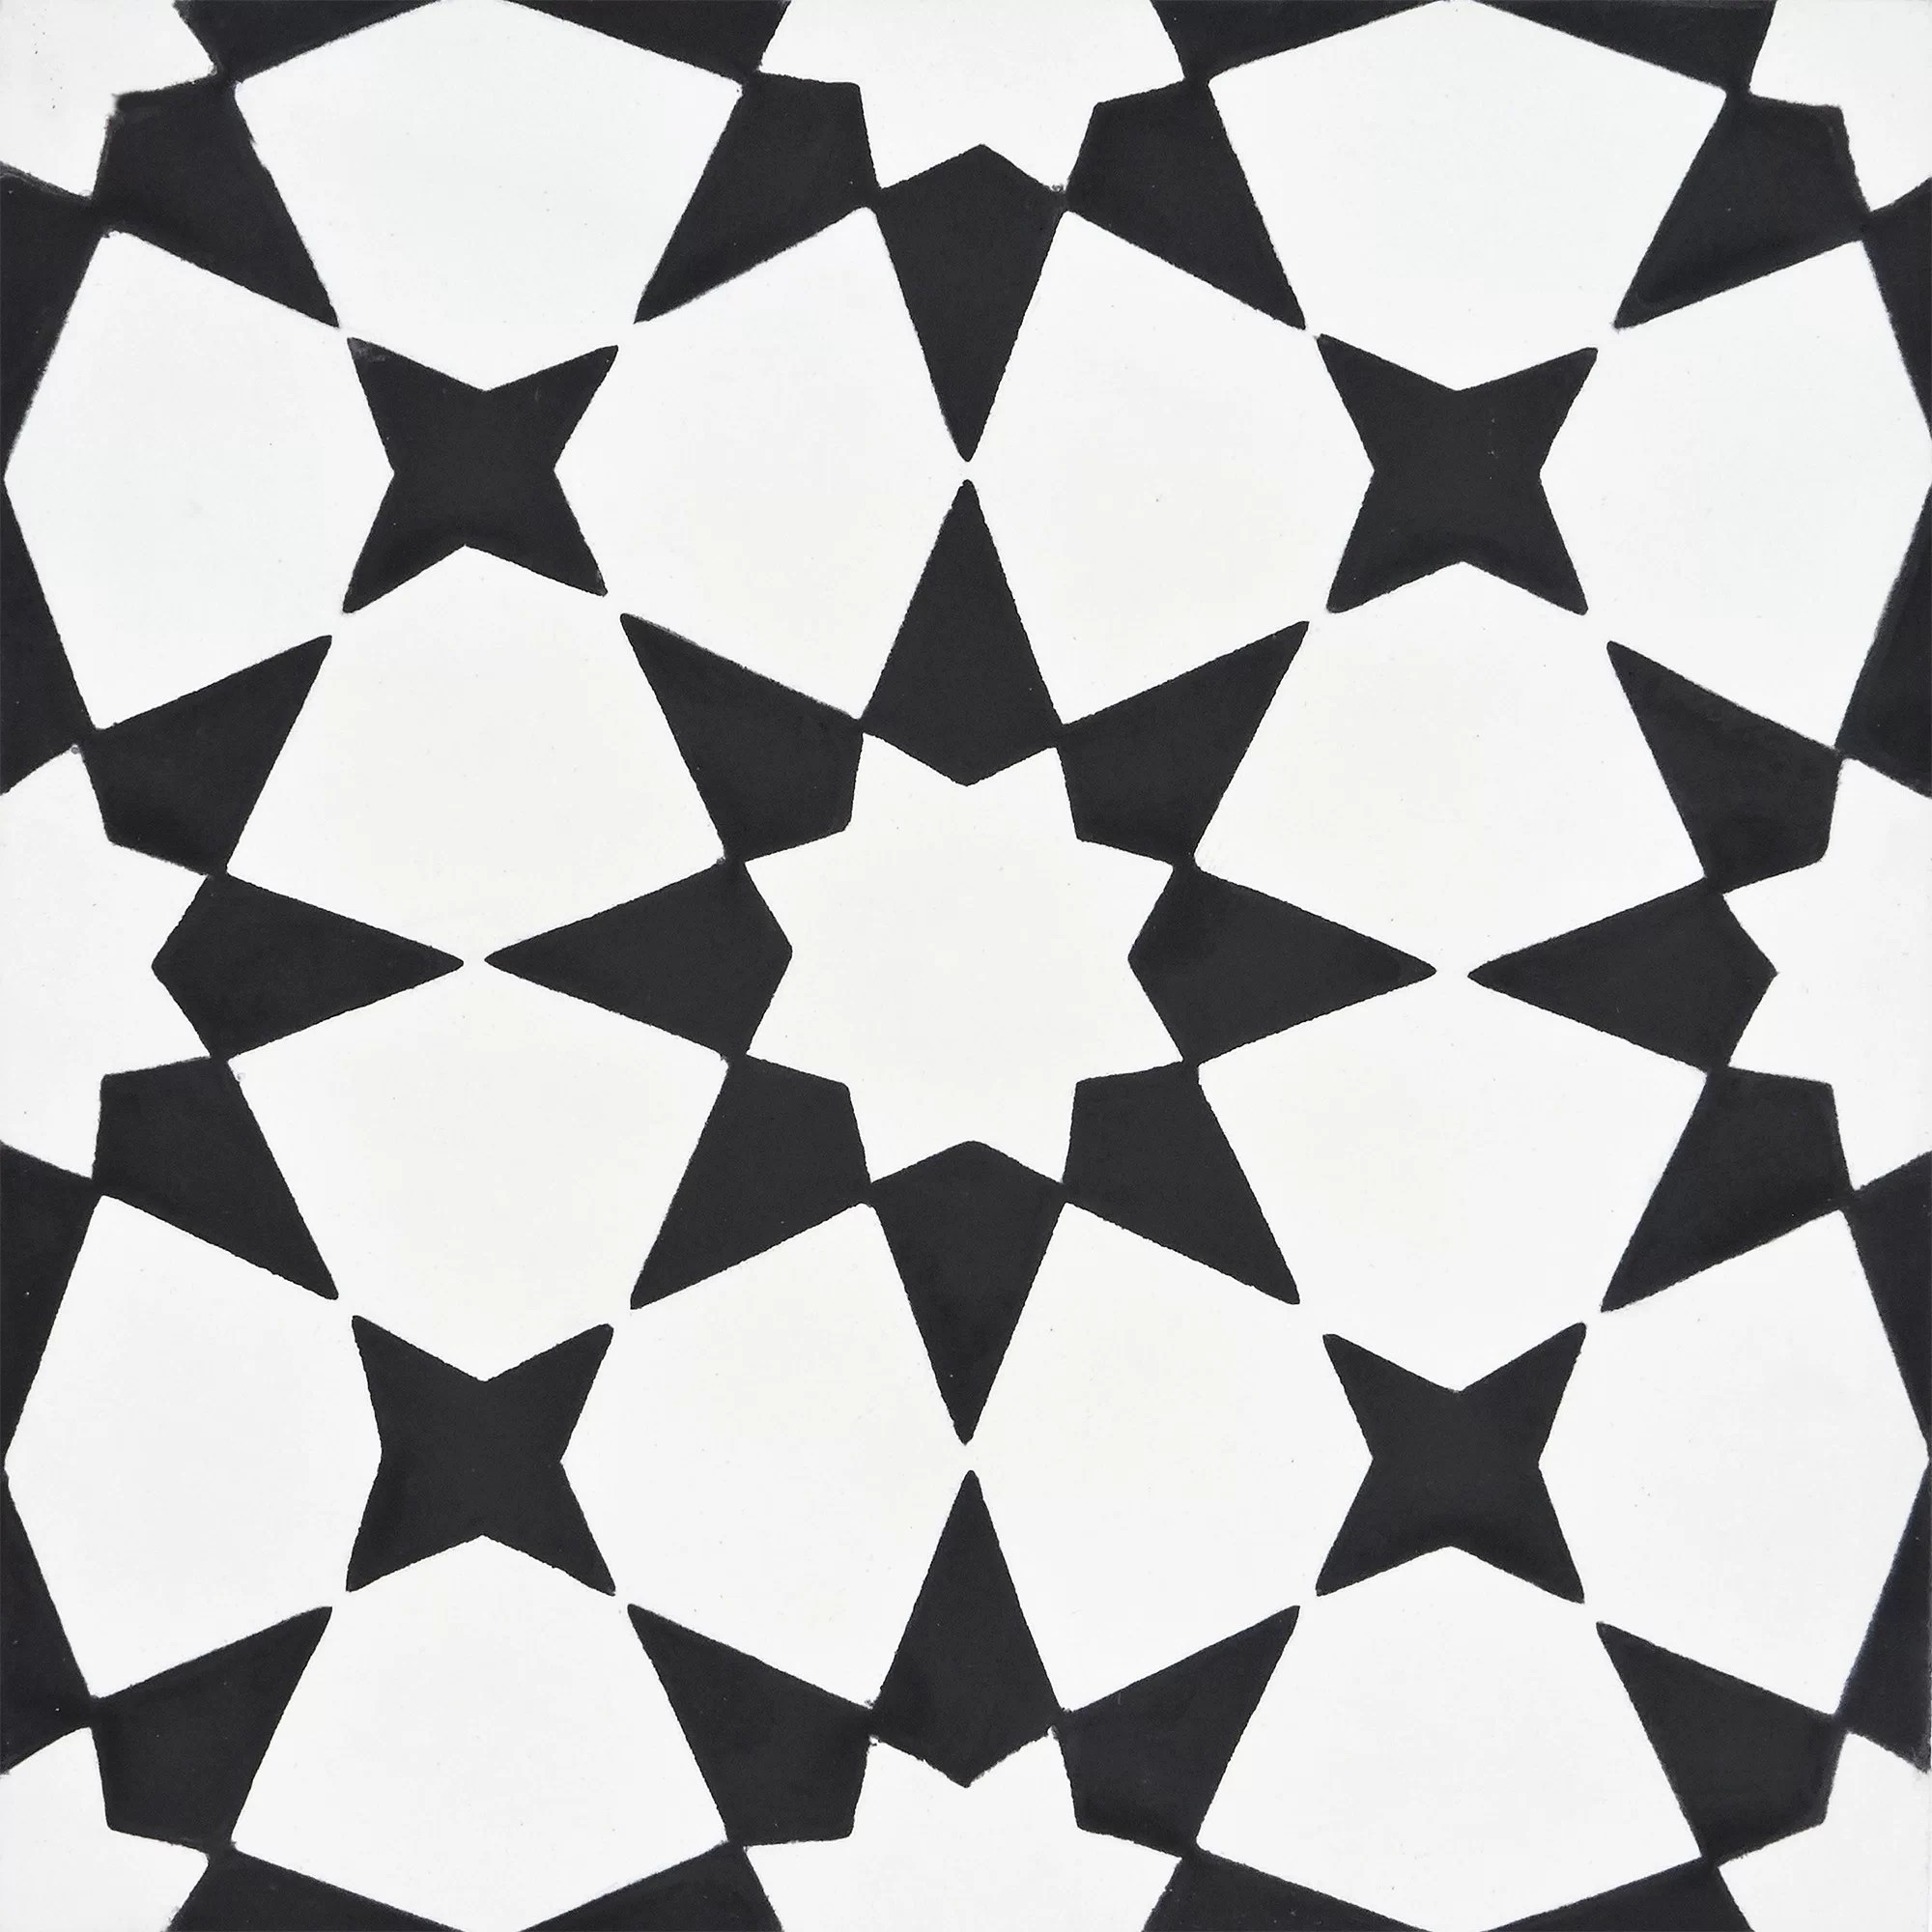 medina 8 x 8 cement patterned wall floor tile